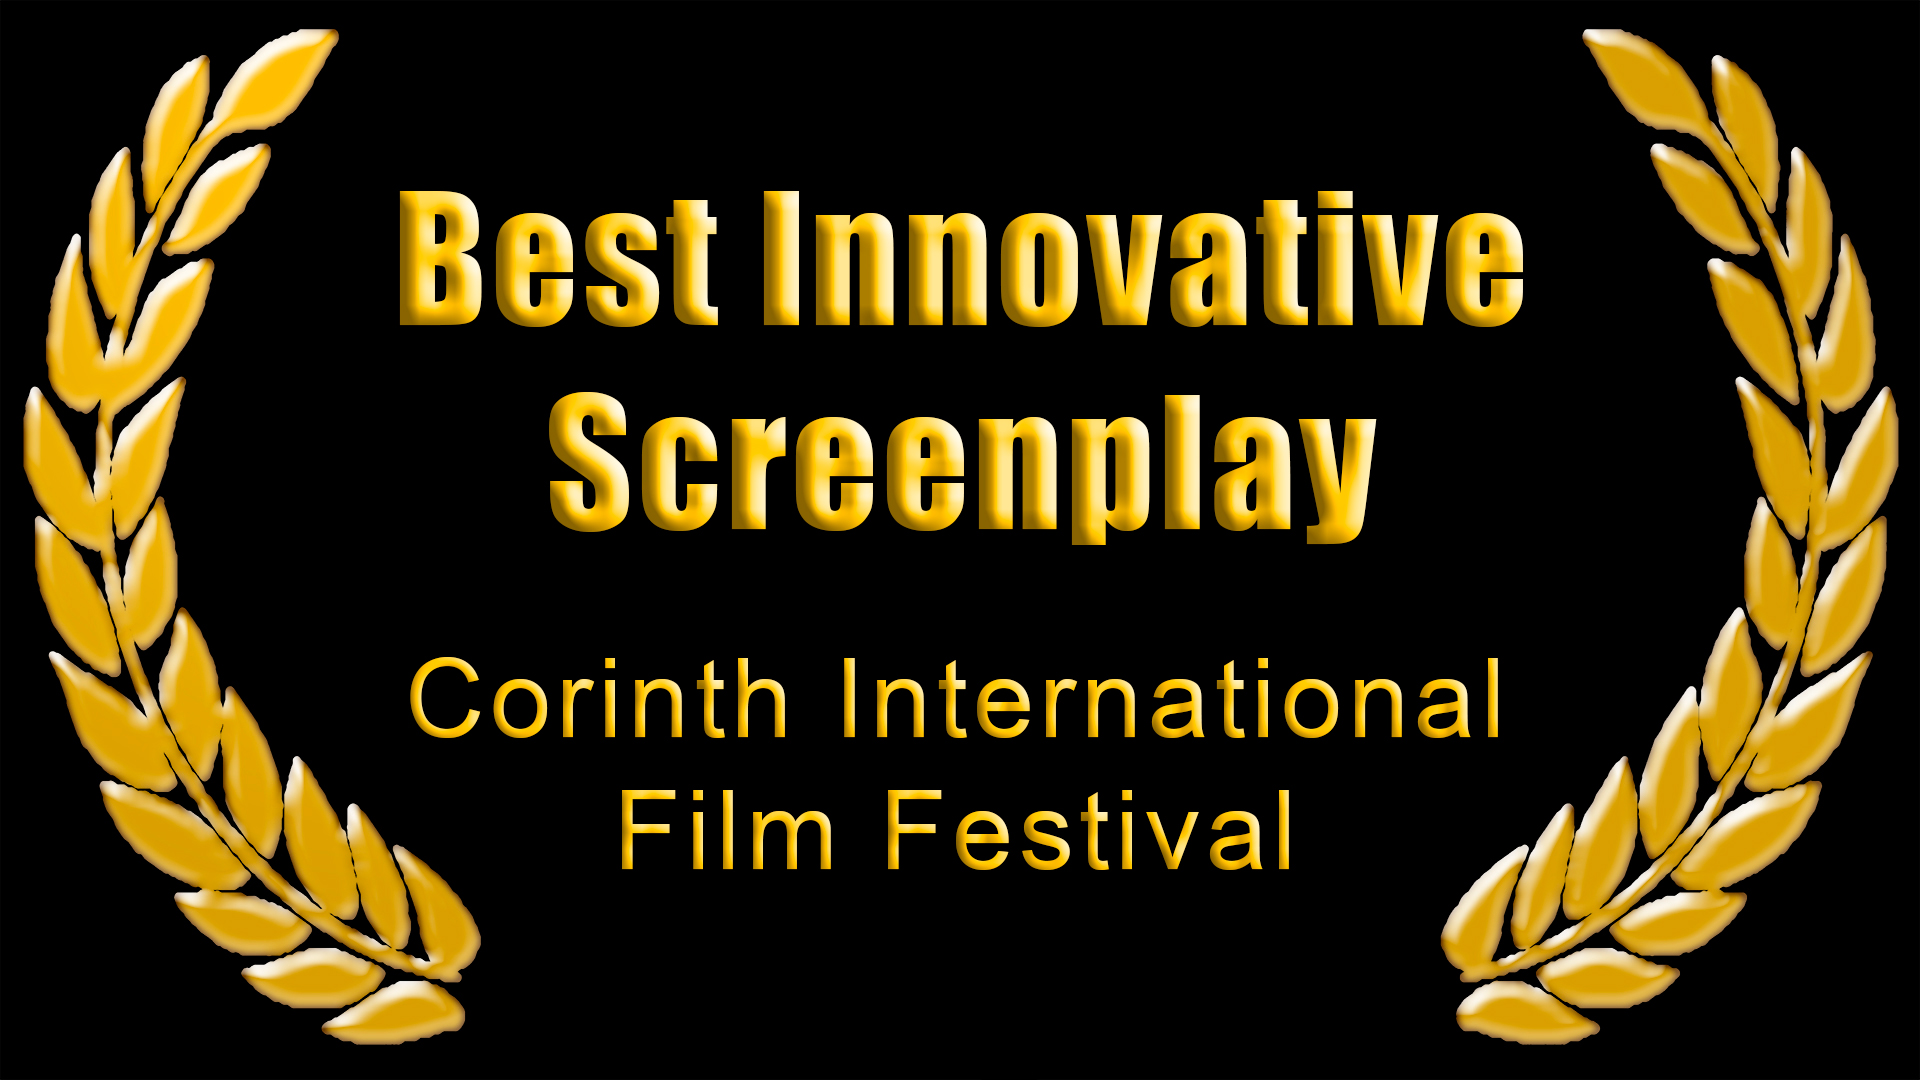 Corinth International Film Festival, 2011